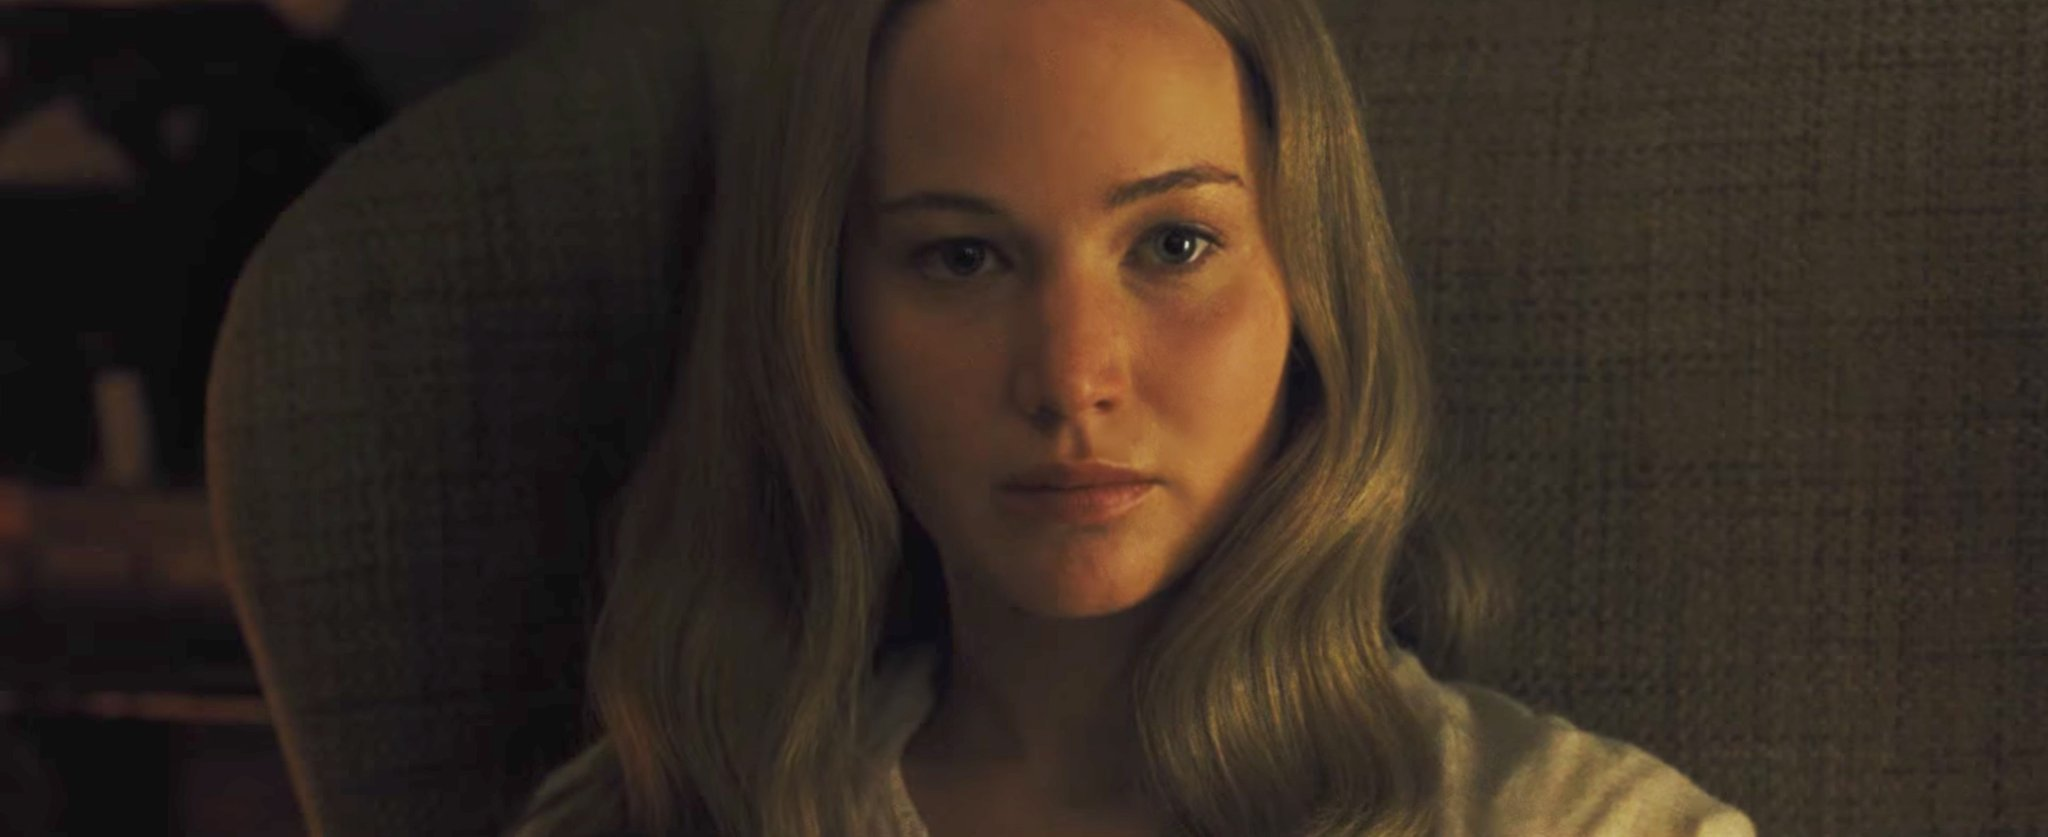 TIFF 2017 Review: mother! (2017 USA, d. Darren Aronofsky, 121 minutes)